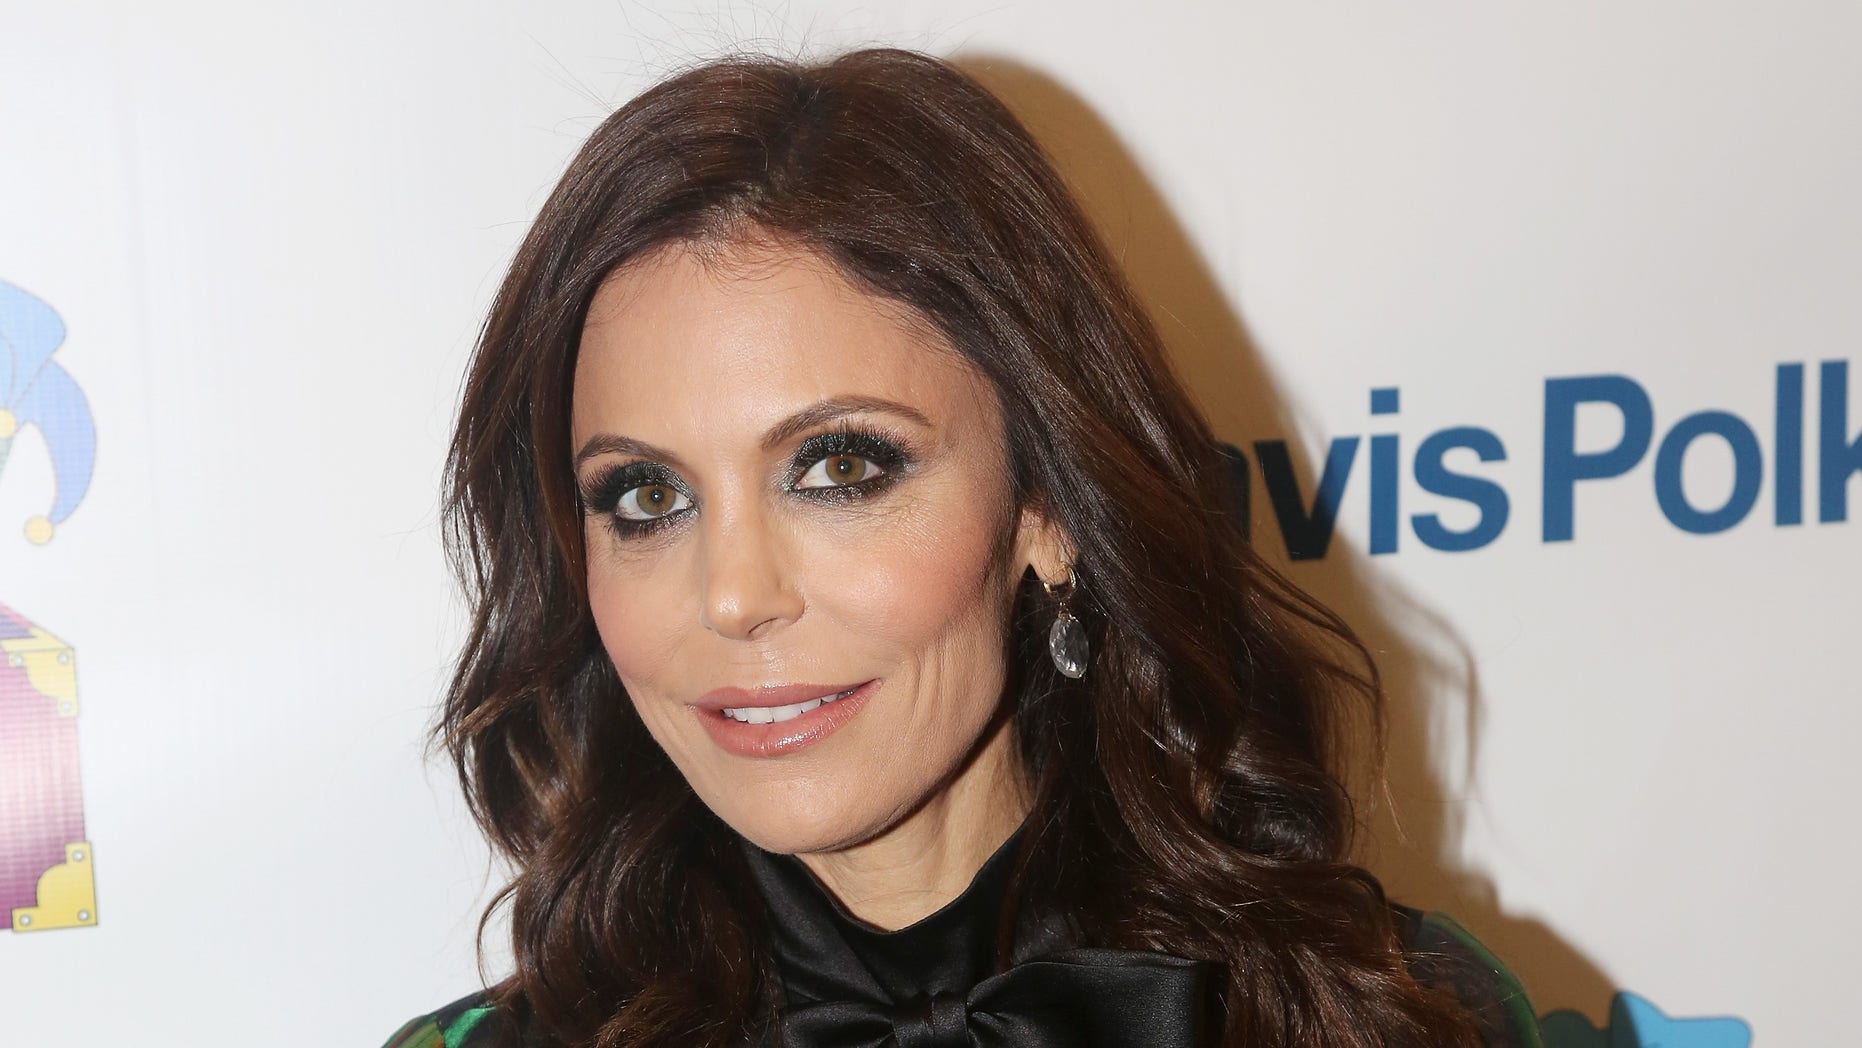 Bethenny Frankel Reveals She Almost Died Over Allergic Reaction